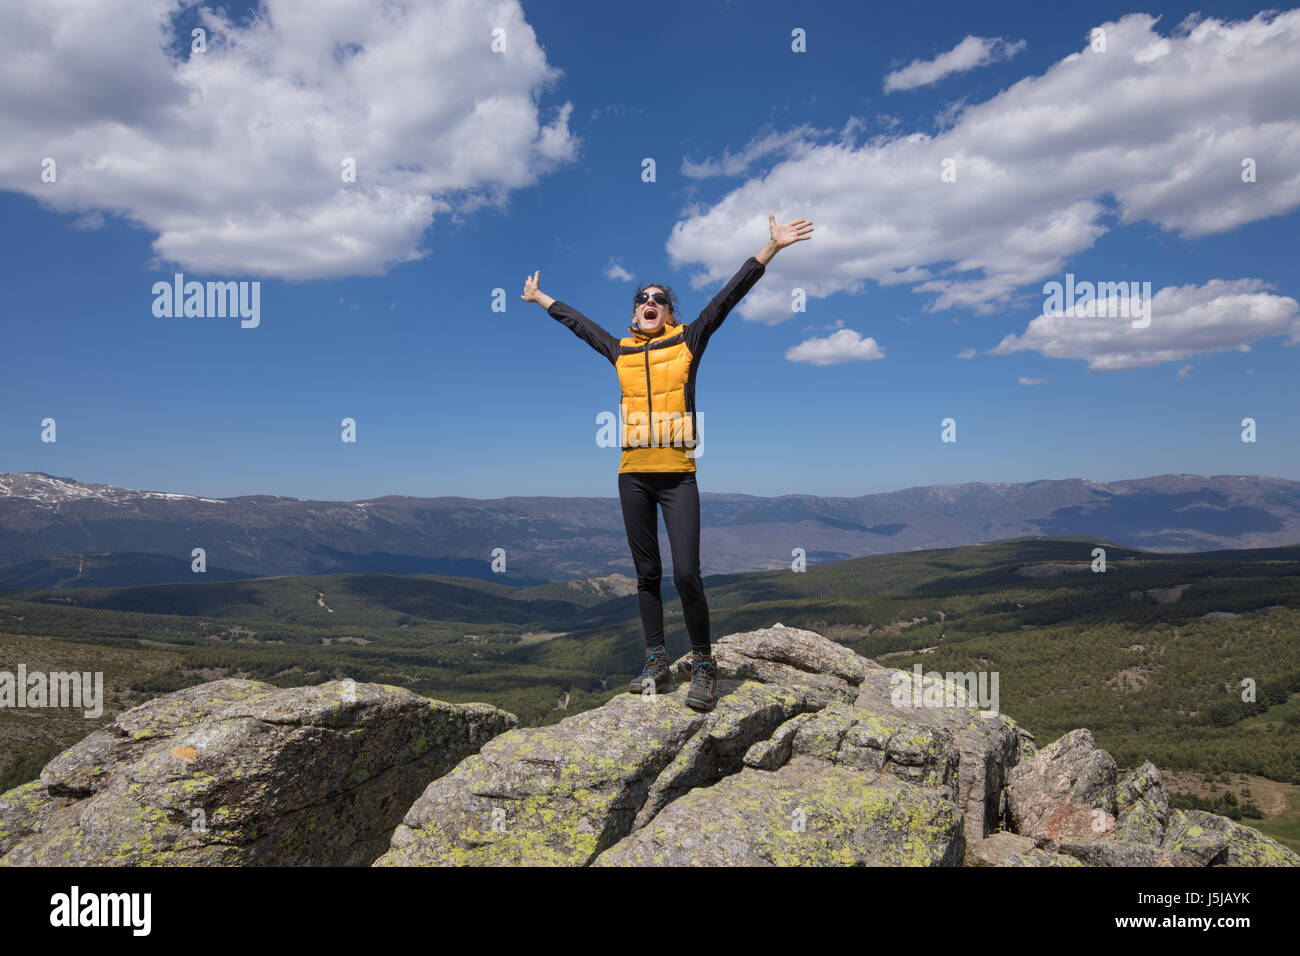 sport hiking or trekking woman with yellow jacket, standing on rock peak, with arms up and screaming open mouth, - Stock Image